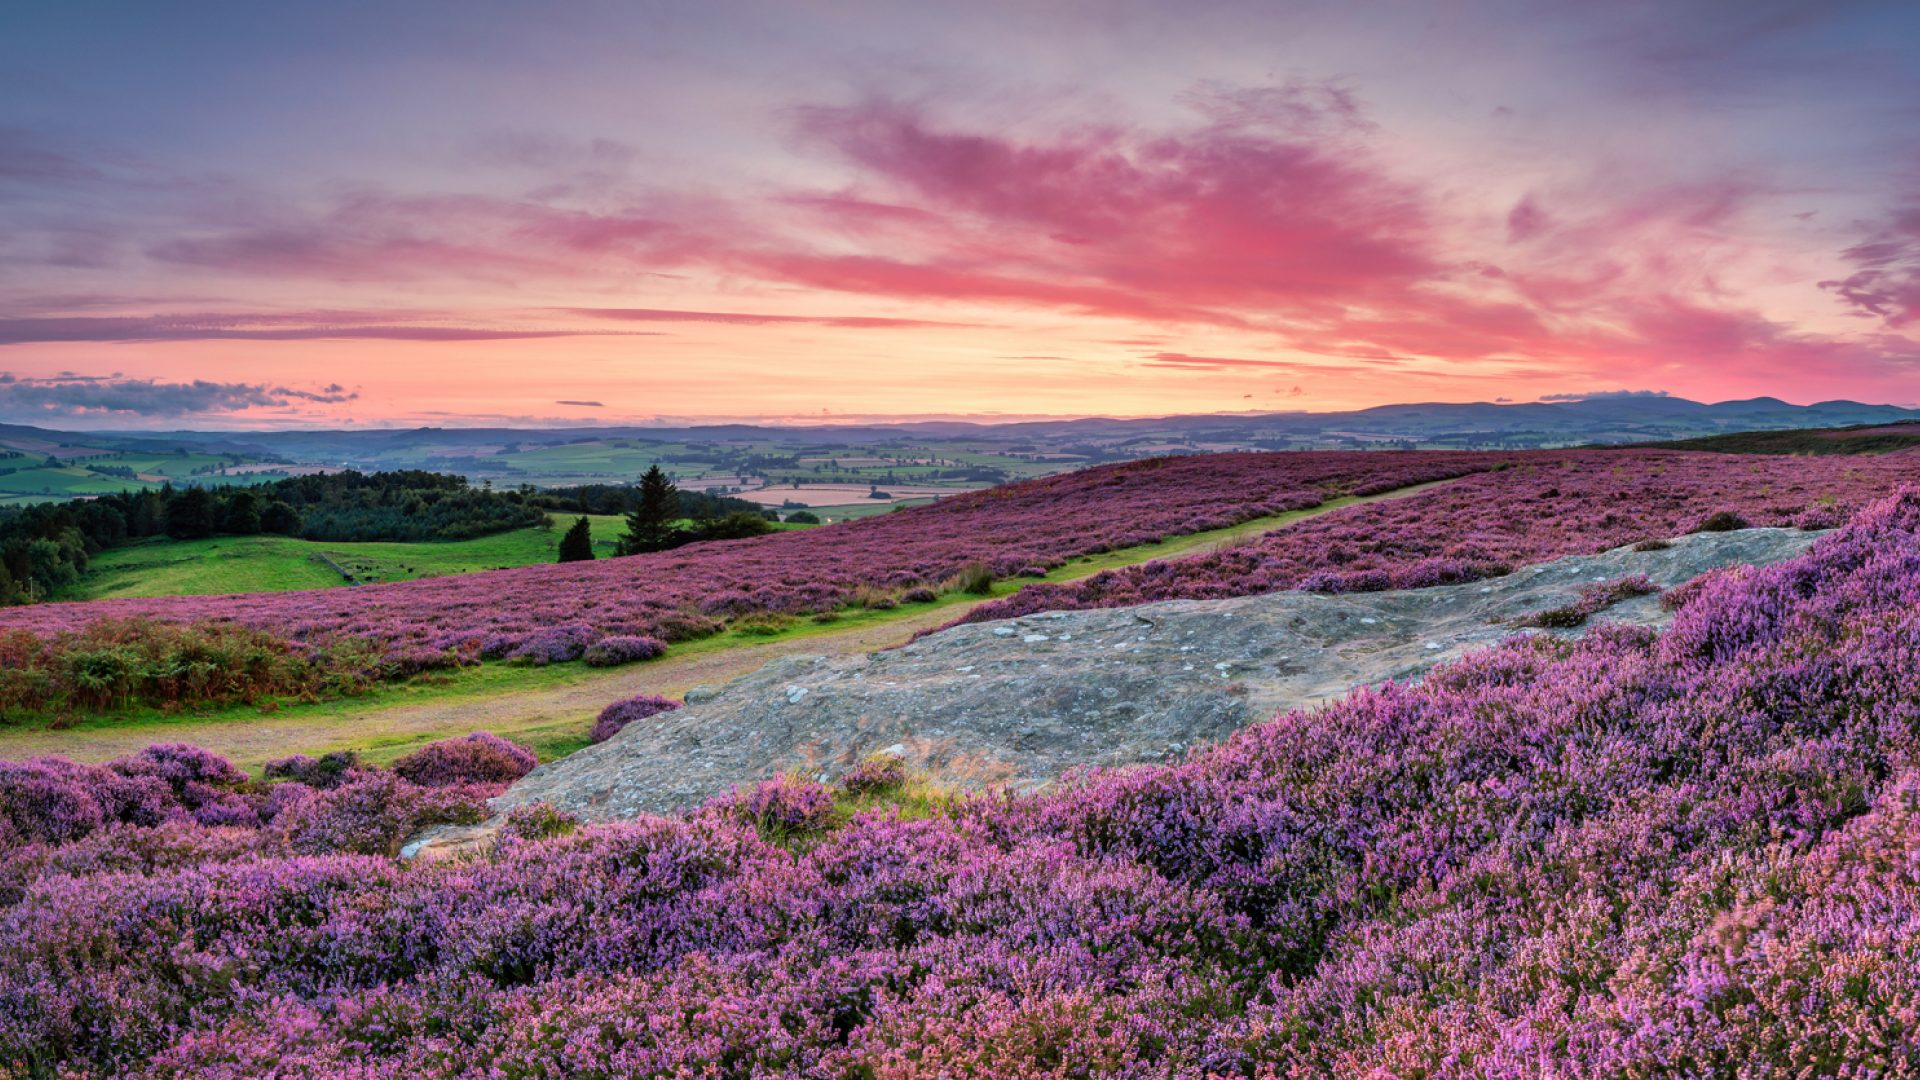 A photo of a beautiful countryside landscape at dusk